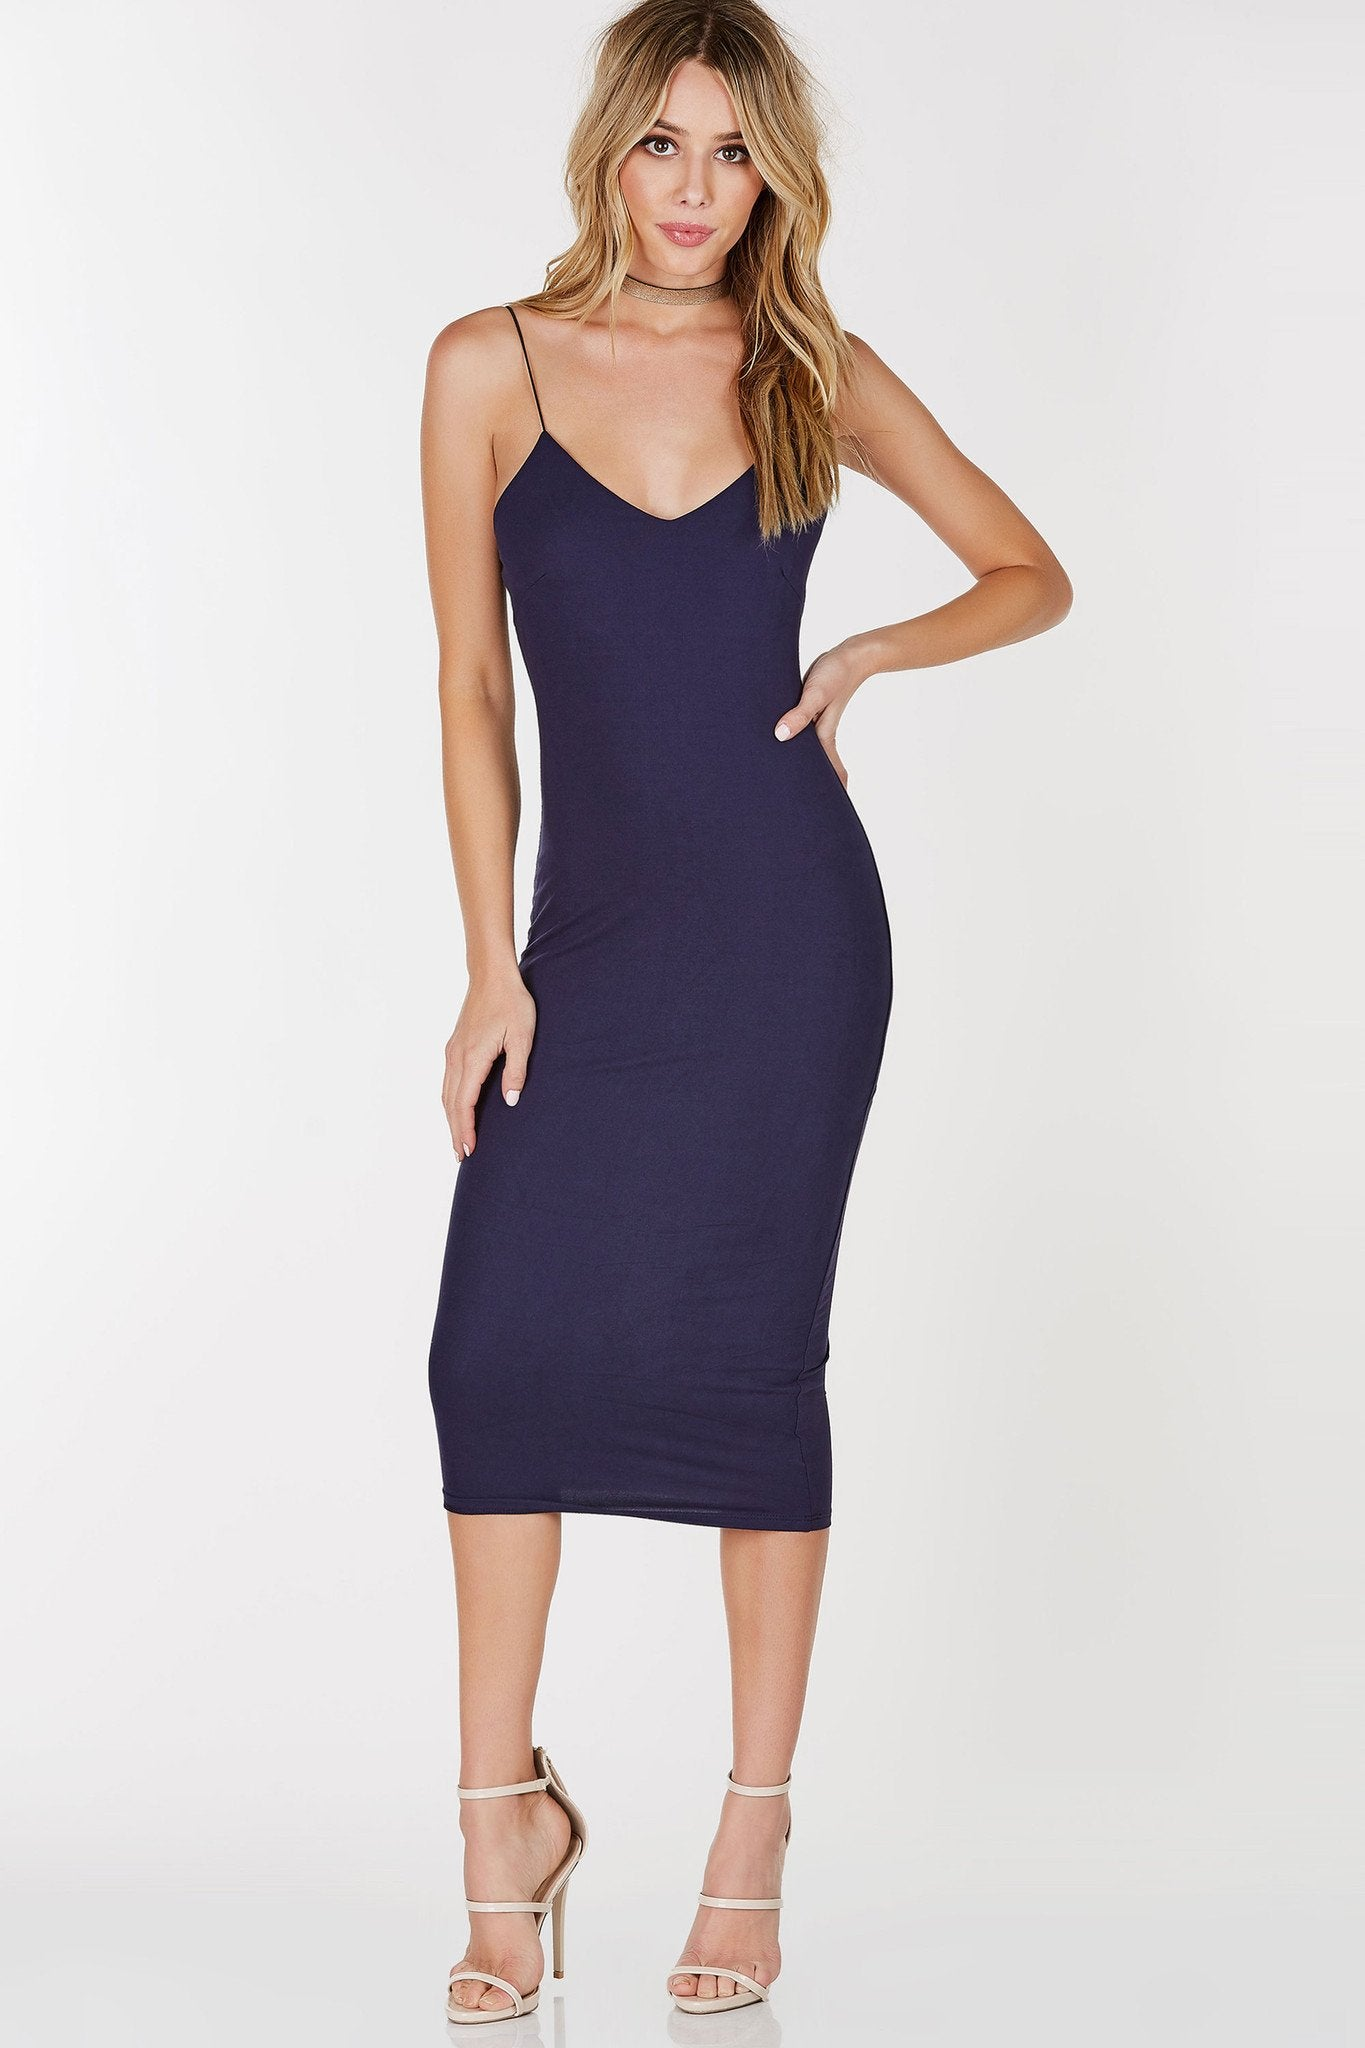 An elegant midi dress with beautiful suede-like exterior. Spaghetti straps with a flattering V neckline. Lined inside for a comfortable wear and extra coverage. Great to pair with strappy pumps!